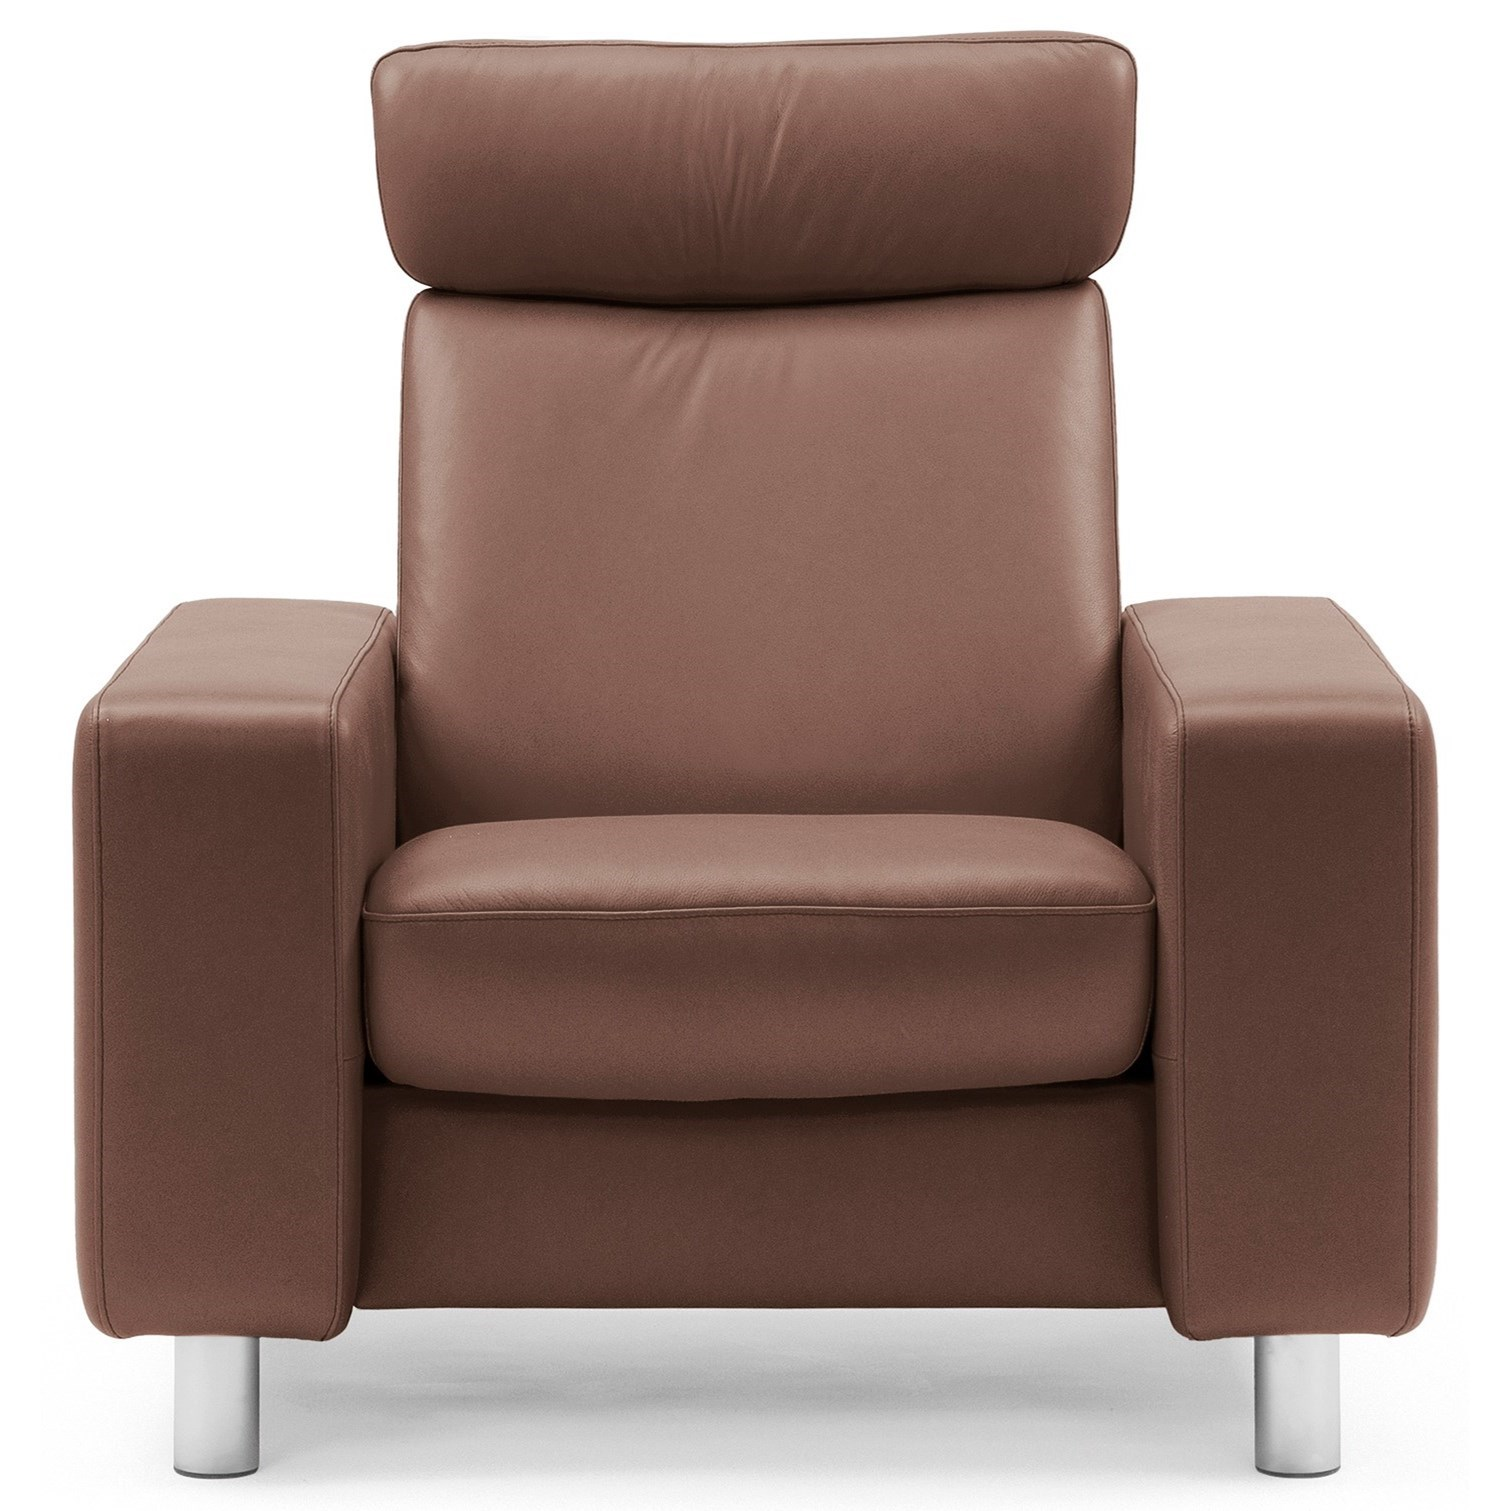 Arion 19 - A20 High-Back Reclining Chair by Stressless at Bennett's Furniture and Mattresses